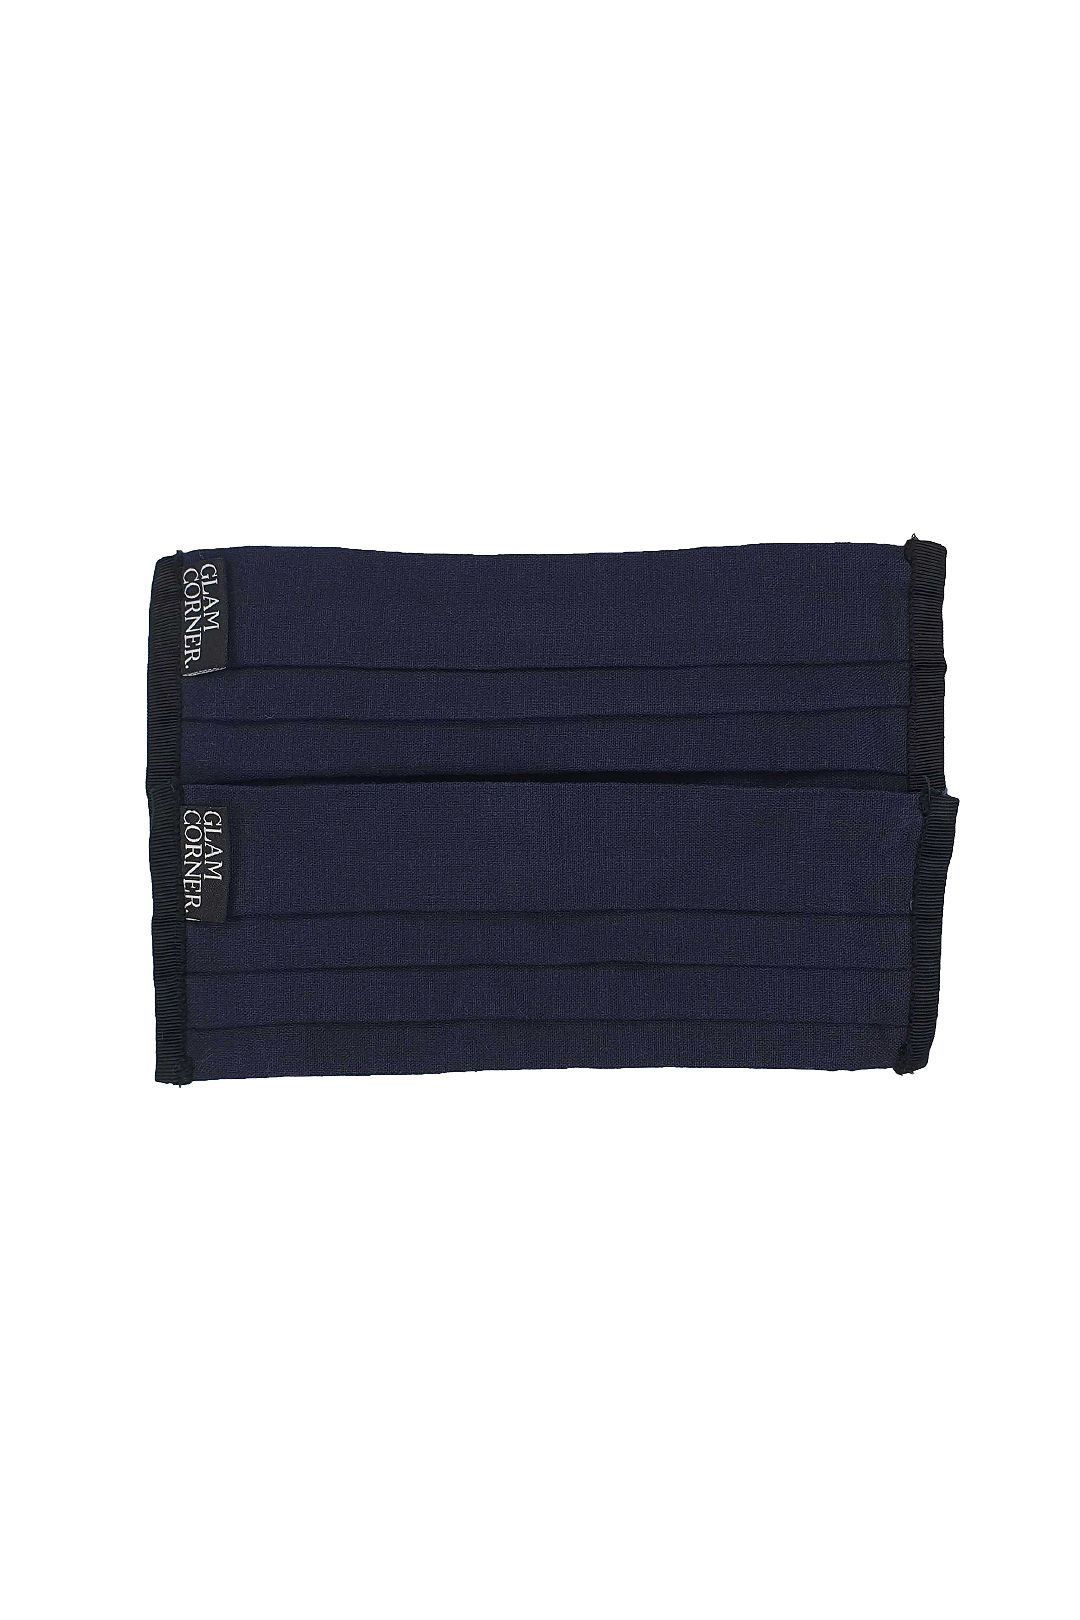 Dress-For-Success-2-Pack-Mask-Navy